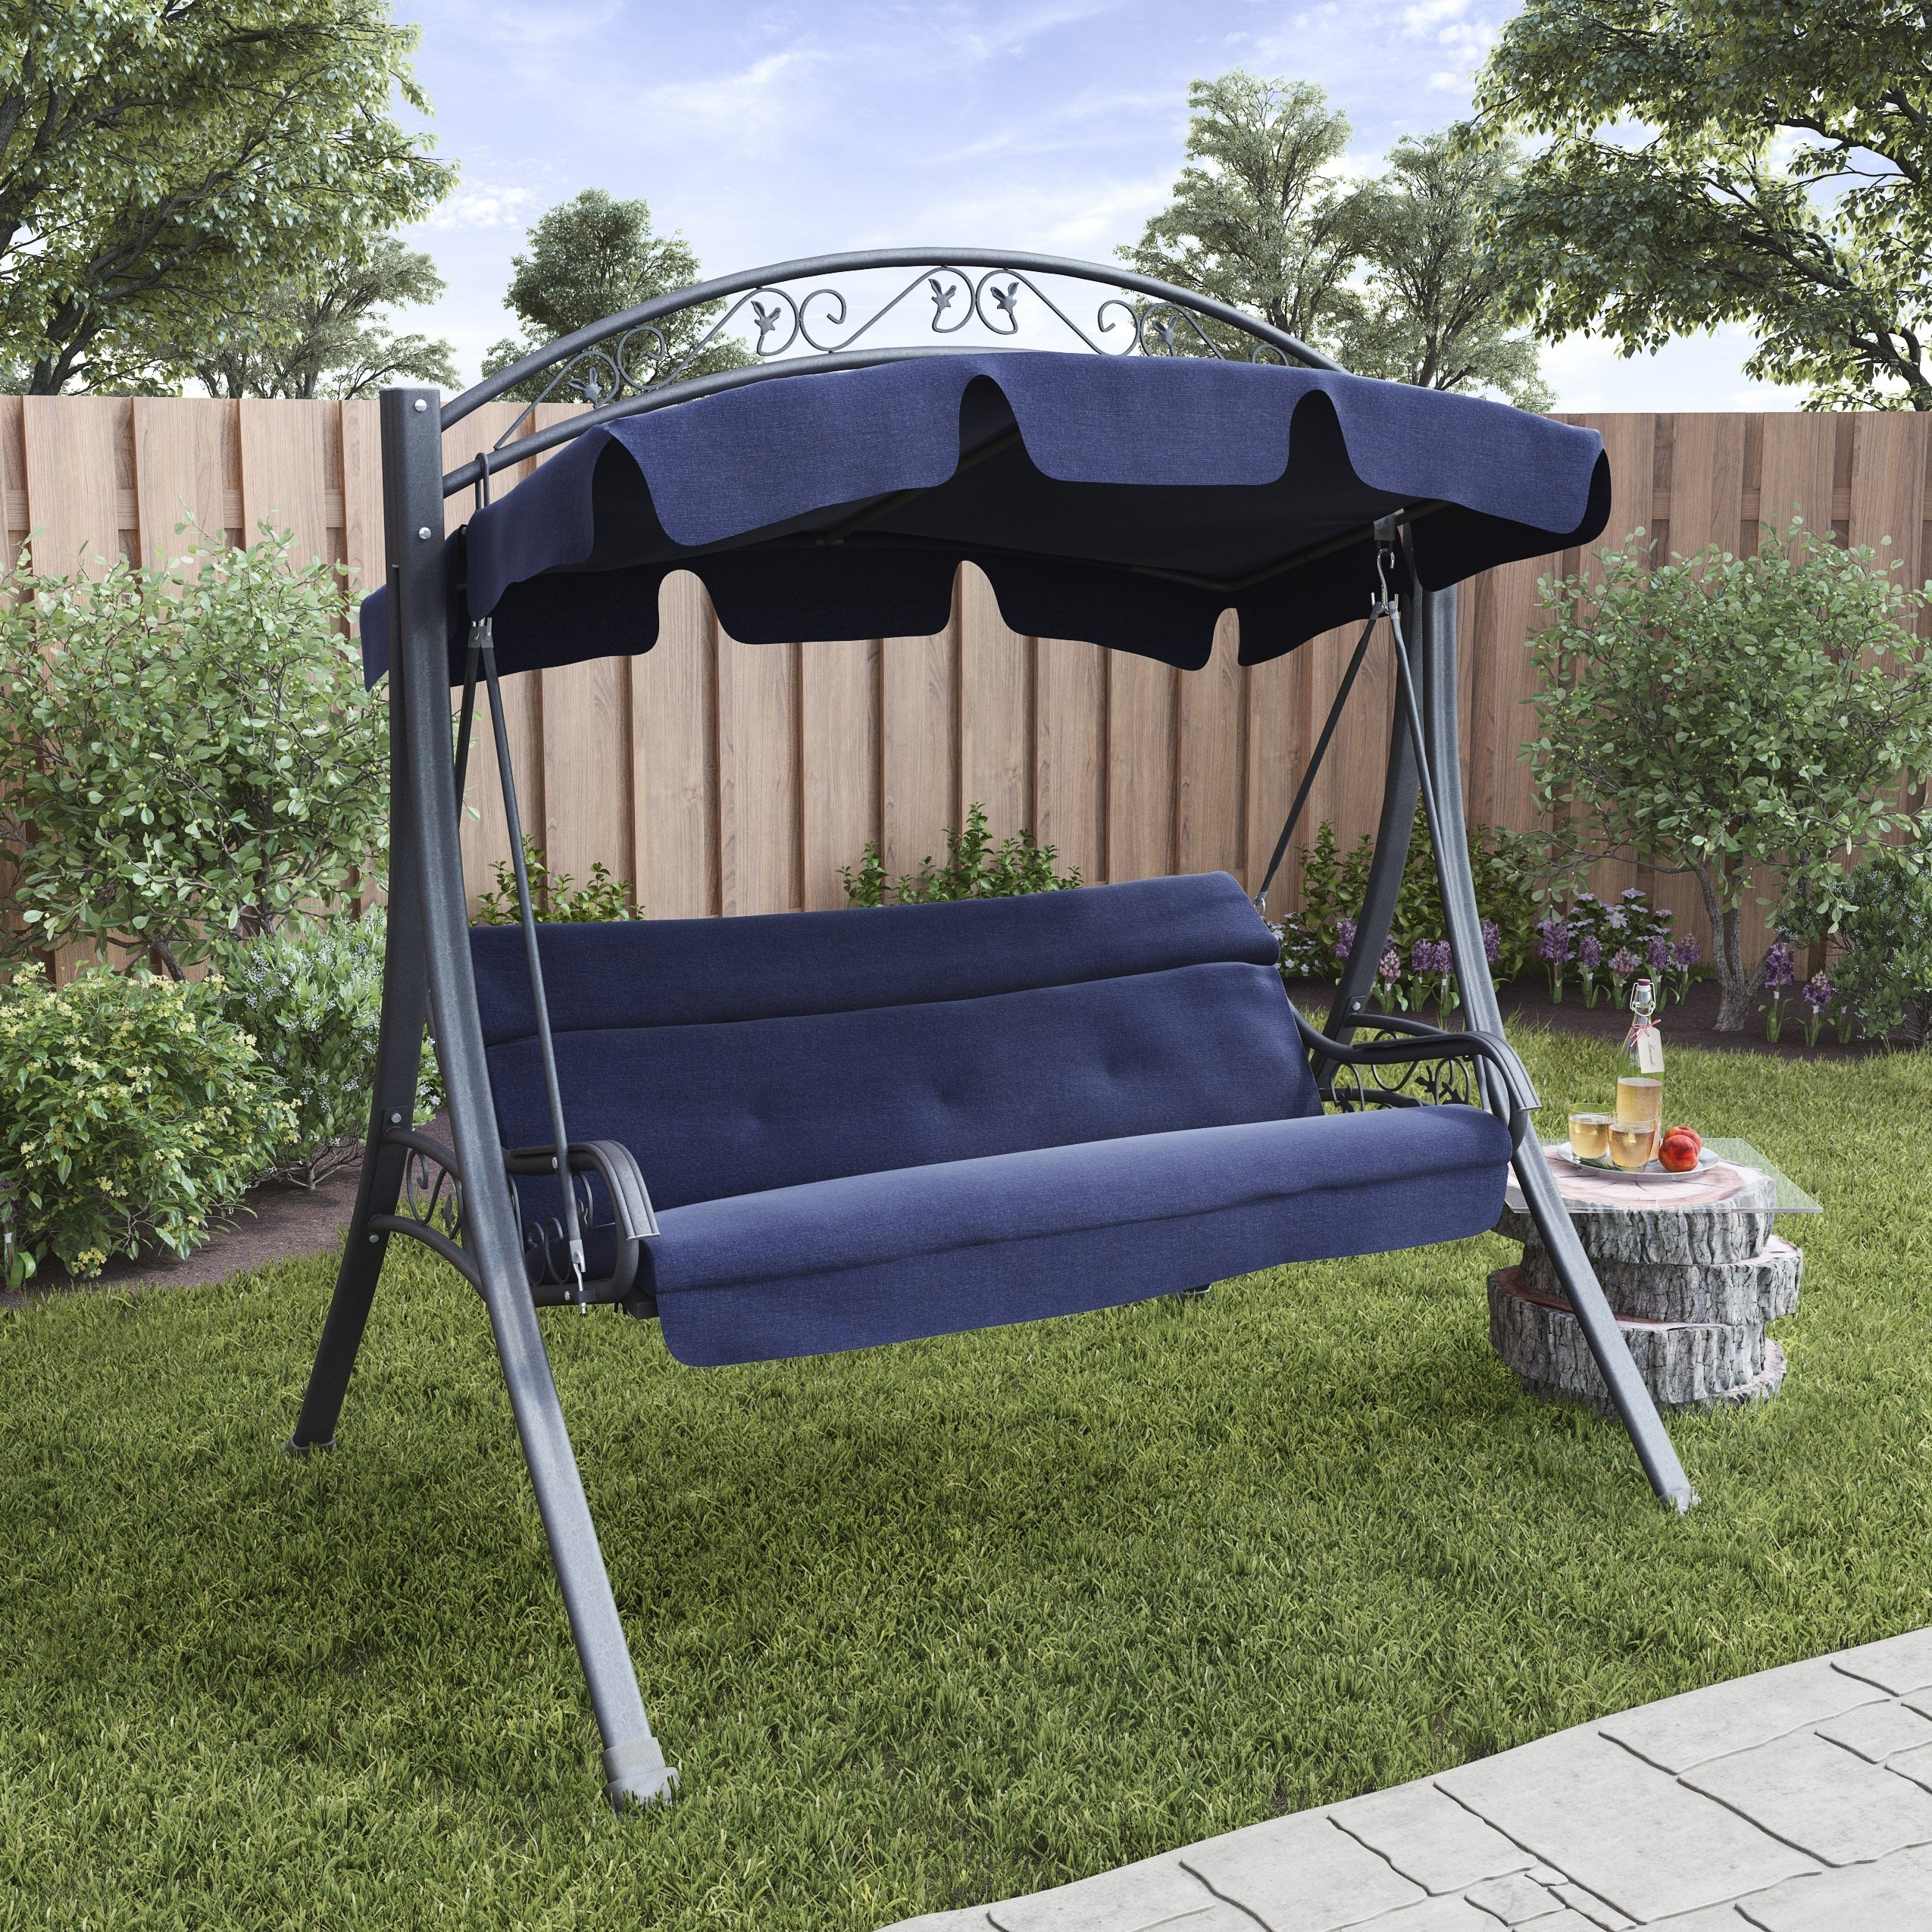 Corliving Nantucket Patio Swing With Arched Canopy For Canopy Patio Porch Swings With Pillows And Cup Holders (View 22 of 25)